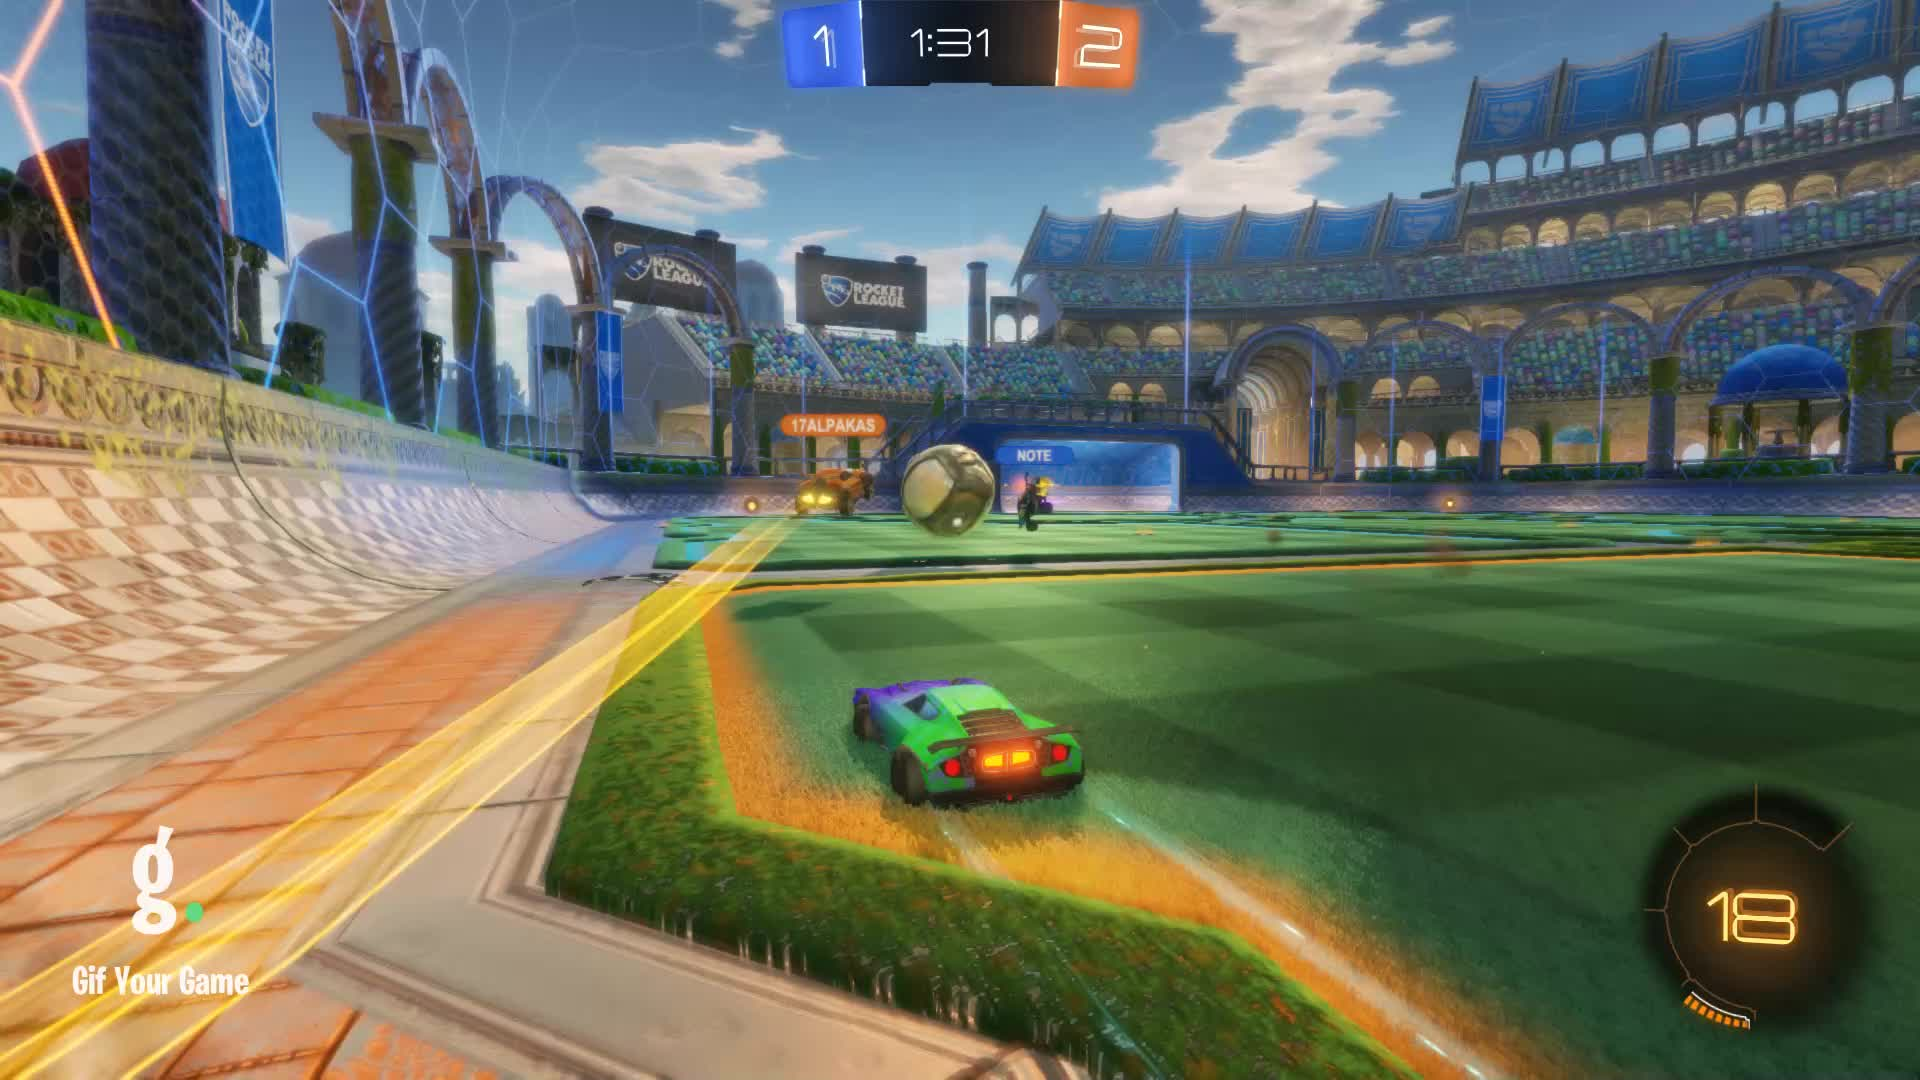 Gif Your Game, GifYourGame, Rocket League, RocketLeague, datboi, Save 4: datboi GIFs